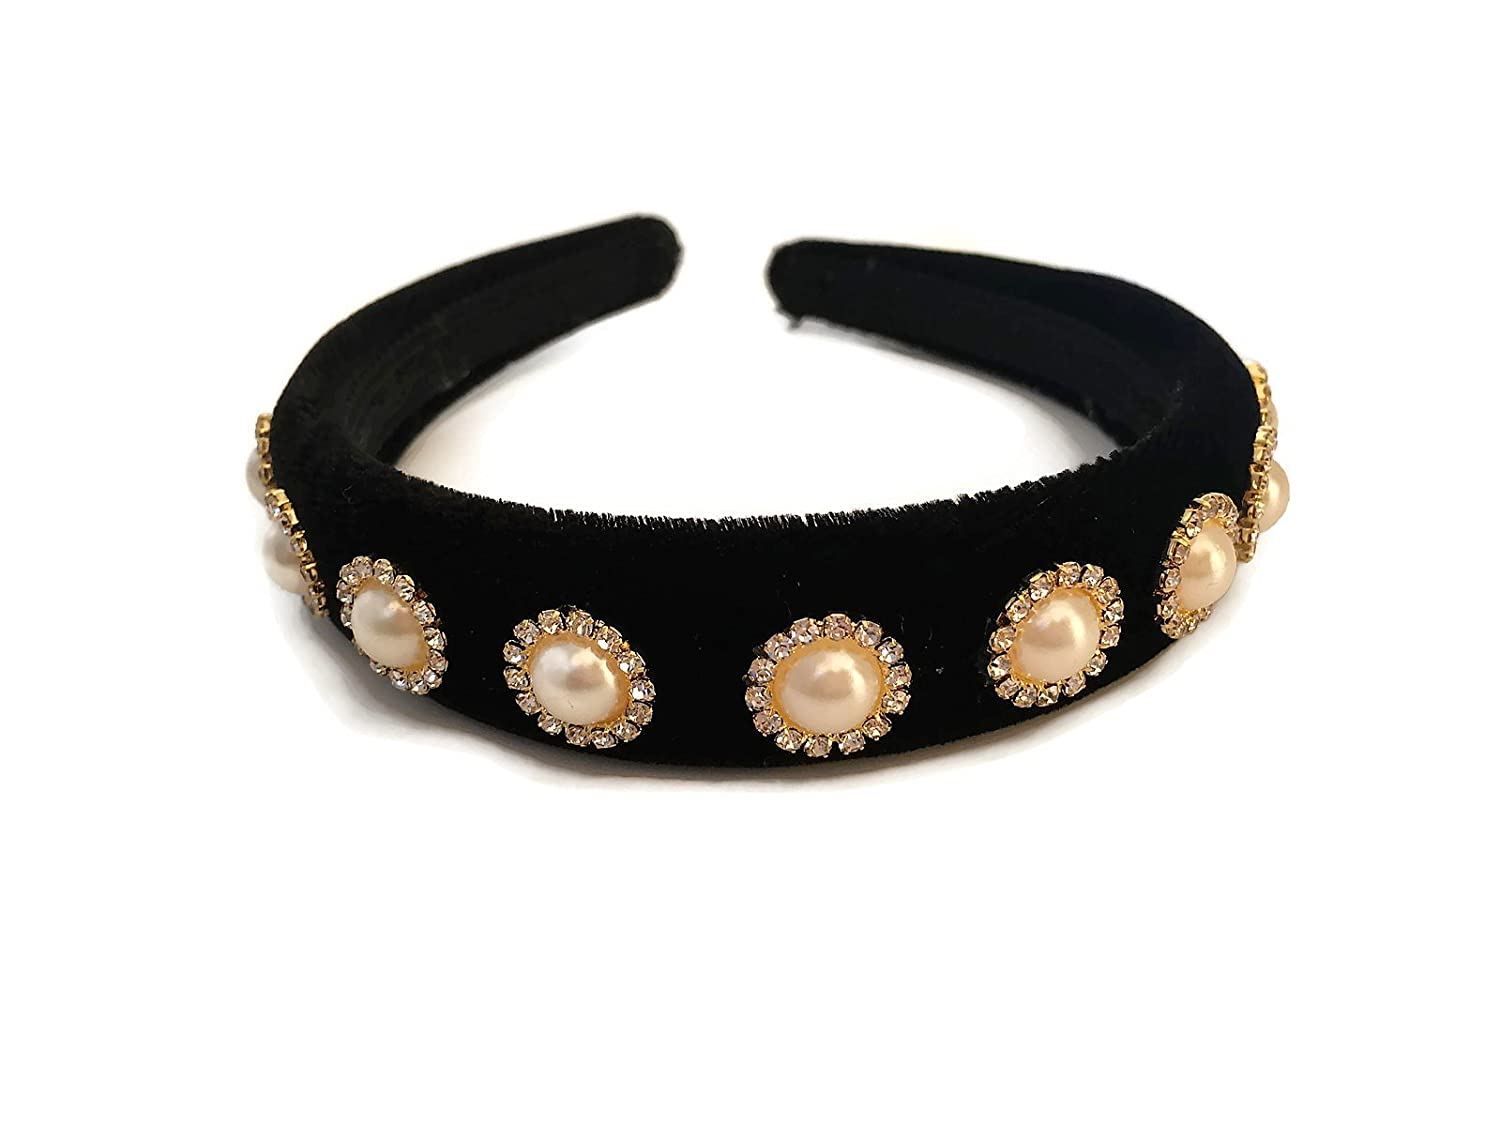 Gorgeous Black Velvet Headband Hair band Alice Band Crystal Diamante Cabochon with Gold Tone edging and back Women's Gift